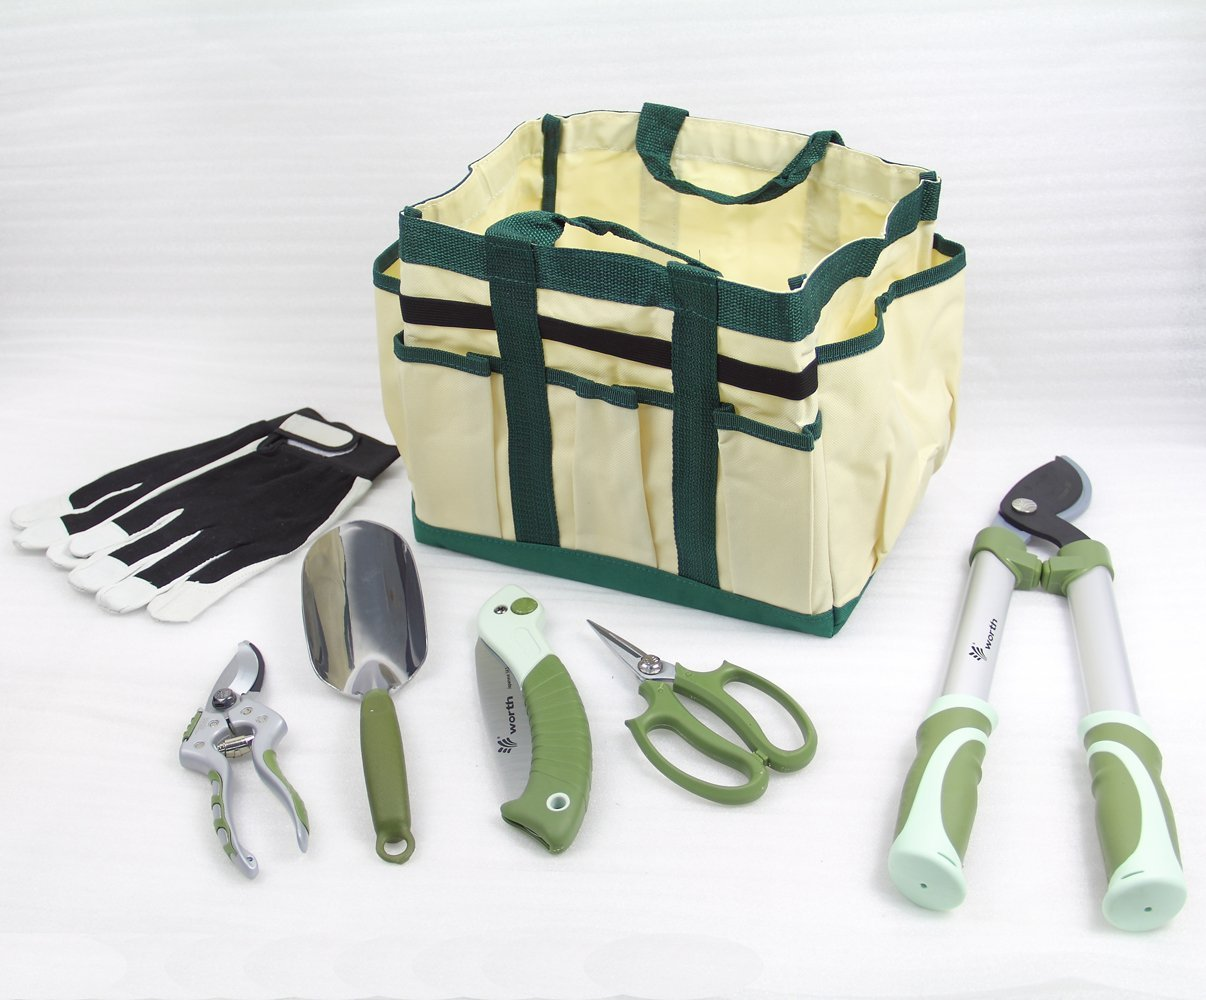 Worth 7 Pieces Ergonomic Garden Tool Set Plant Care Hand Tools Combination (Bag、trowel、lopper、pruner、scissors、folding saw、glove)